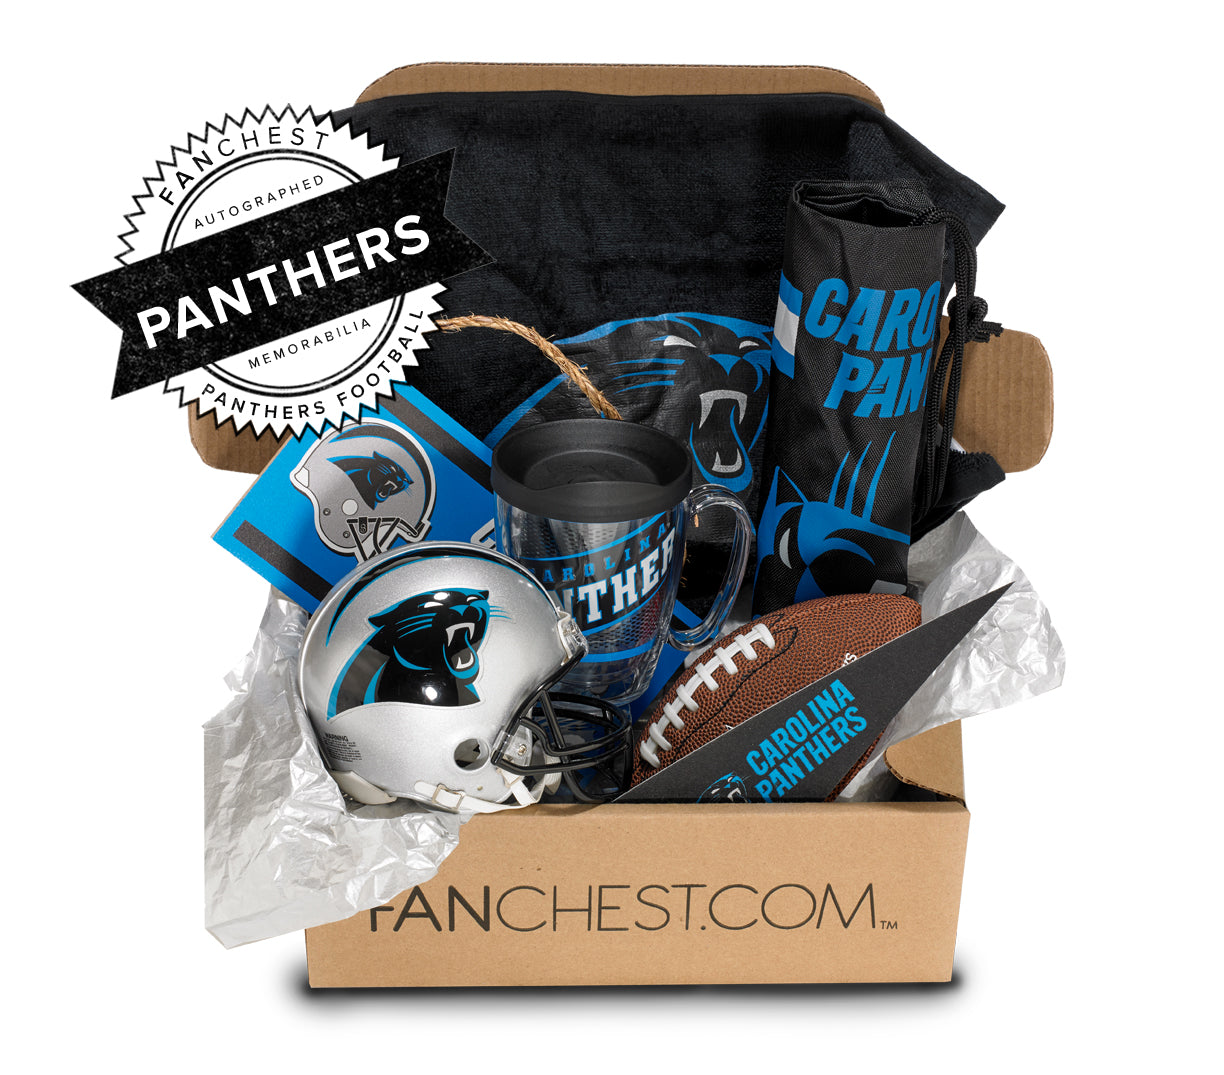 Panthers Memorabilia Gift Box Signed Mini Helmet Included